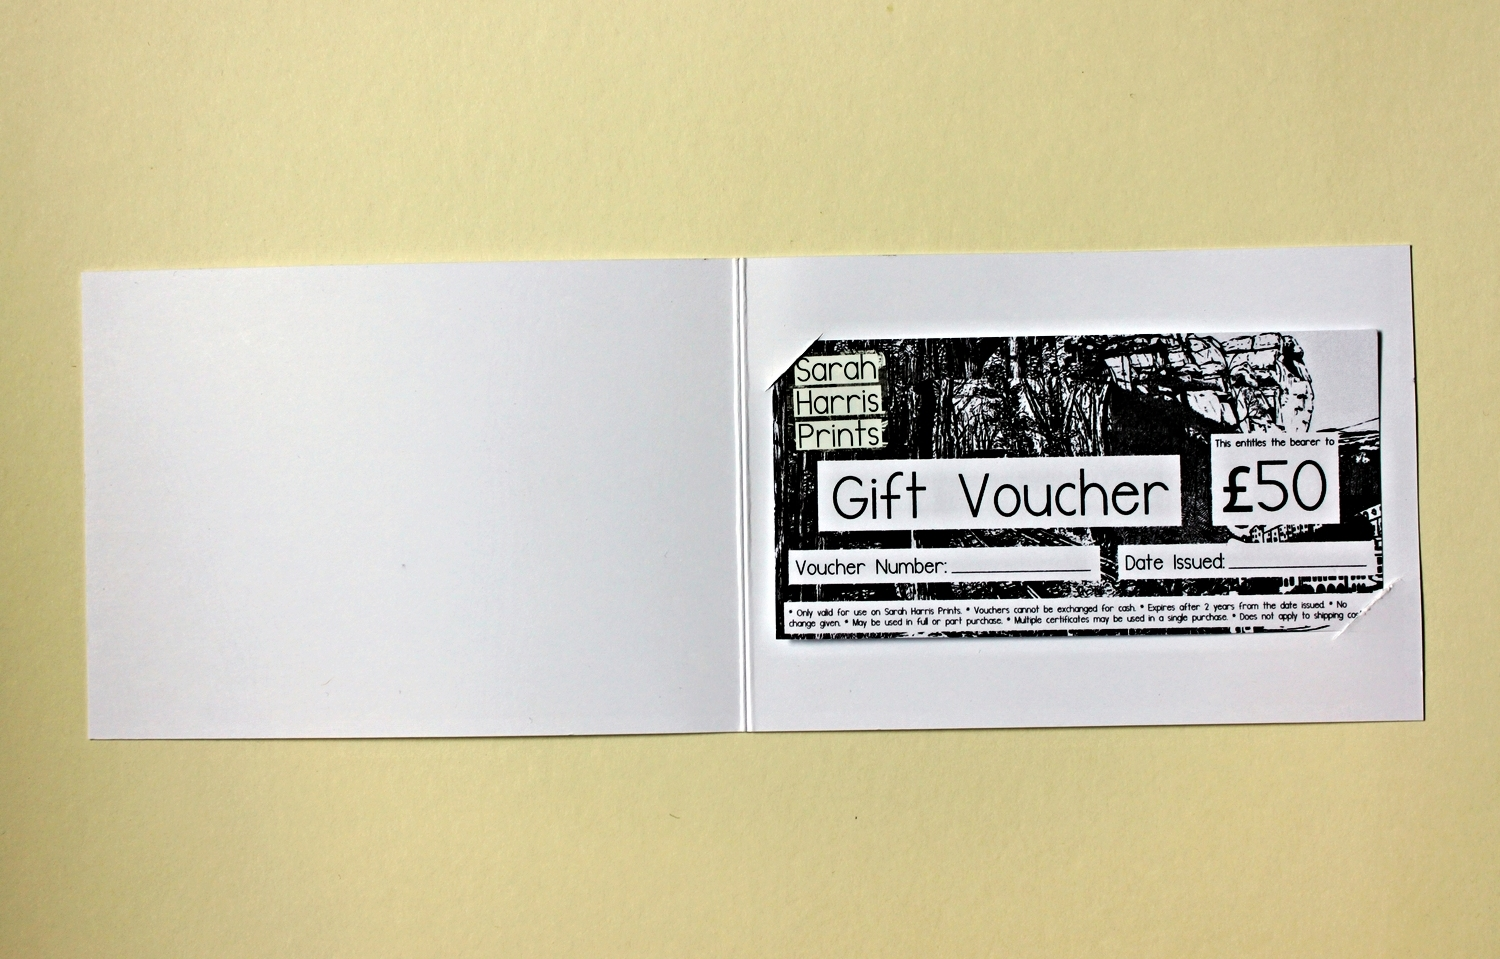 Voucher in Card full.jpg